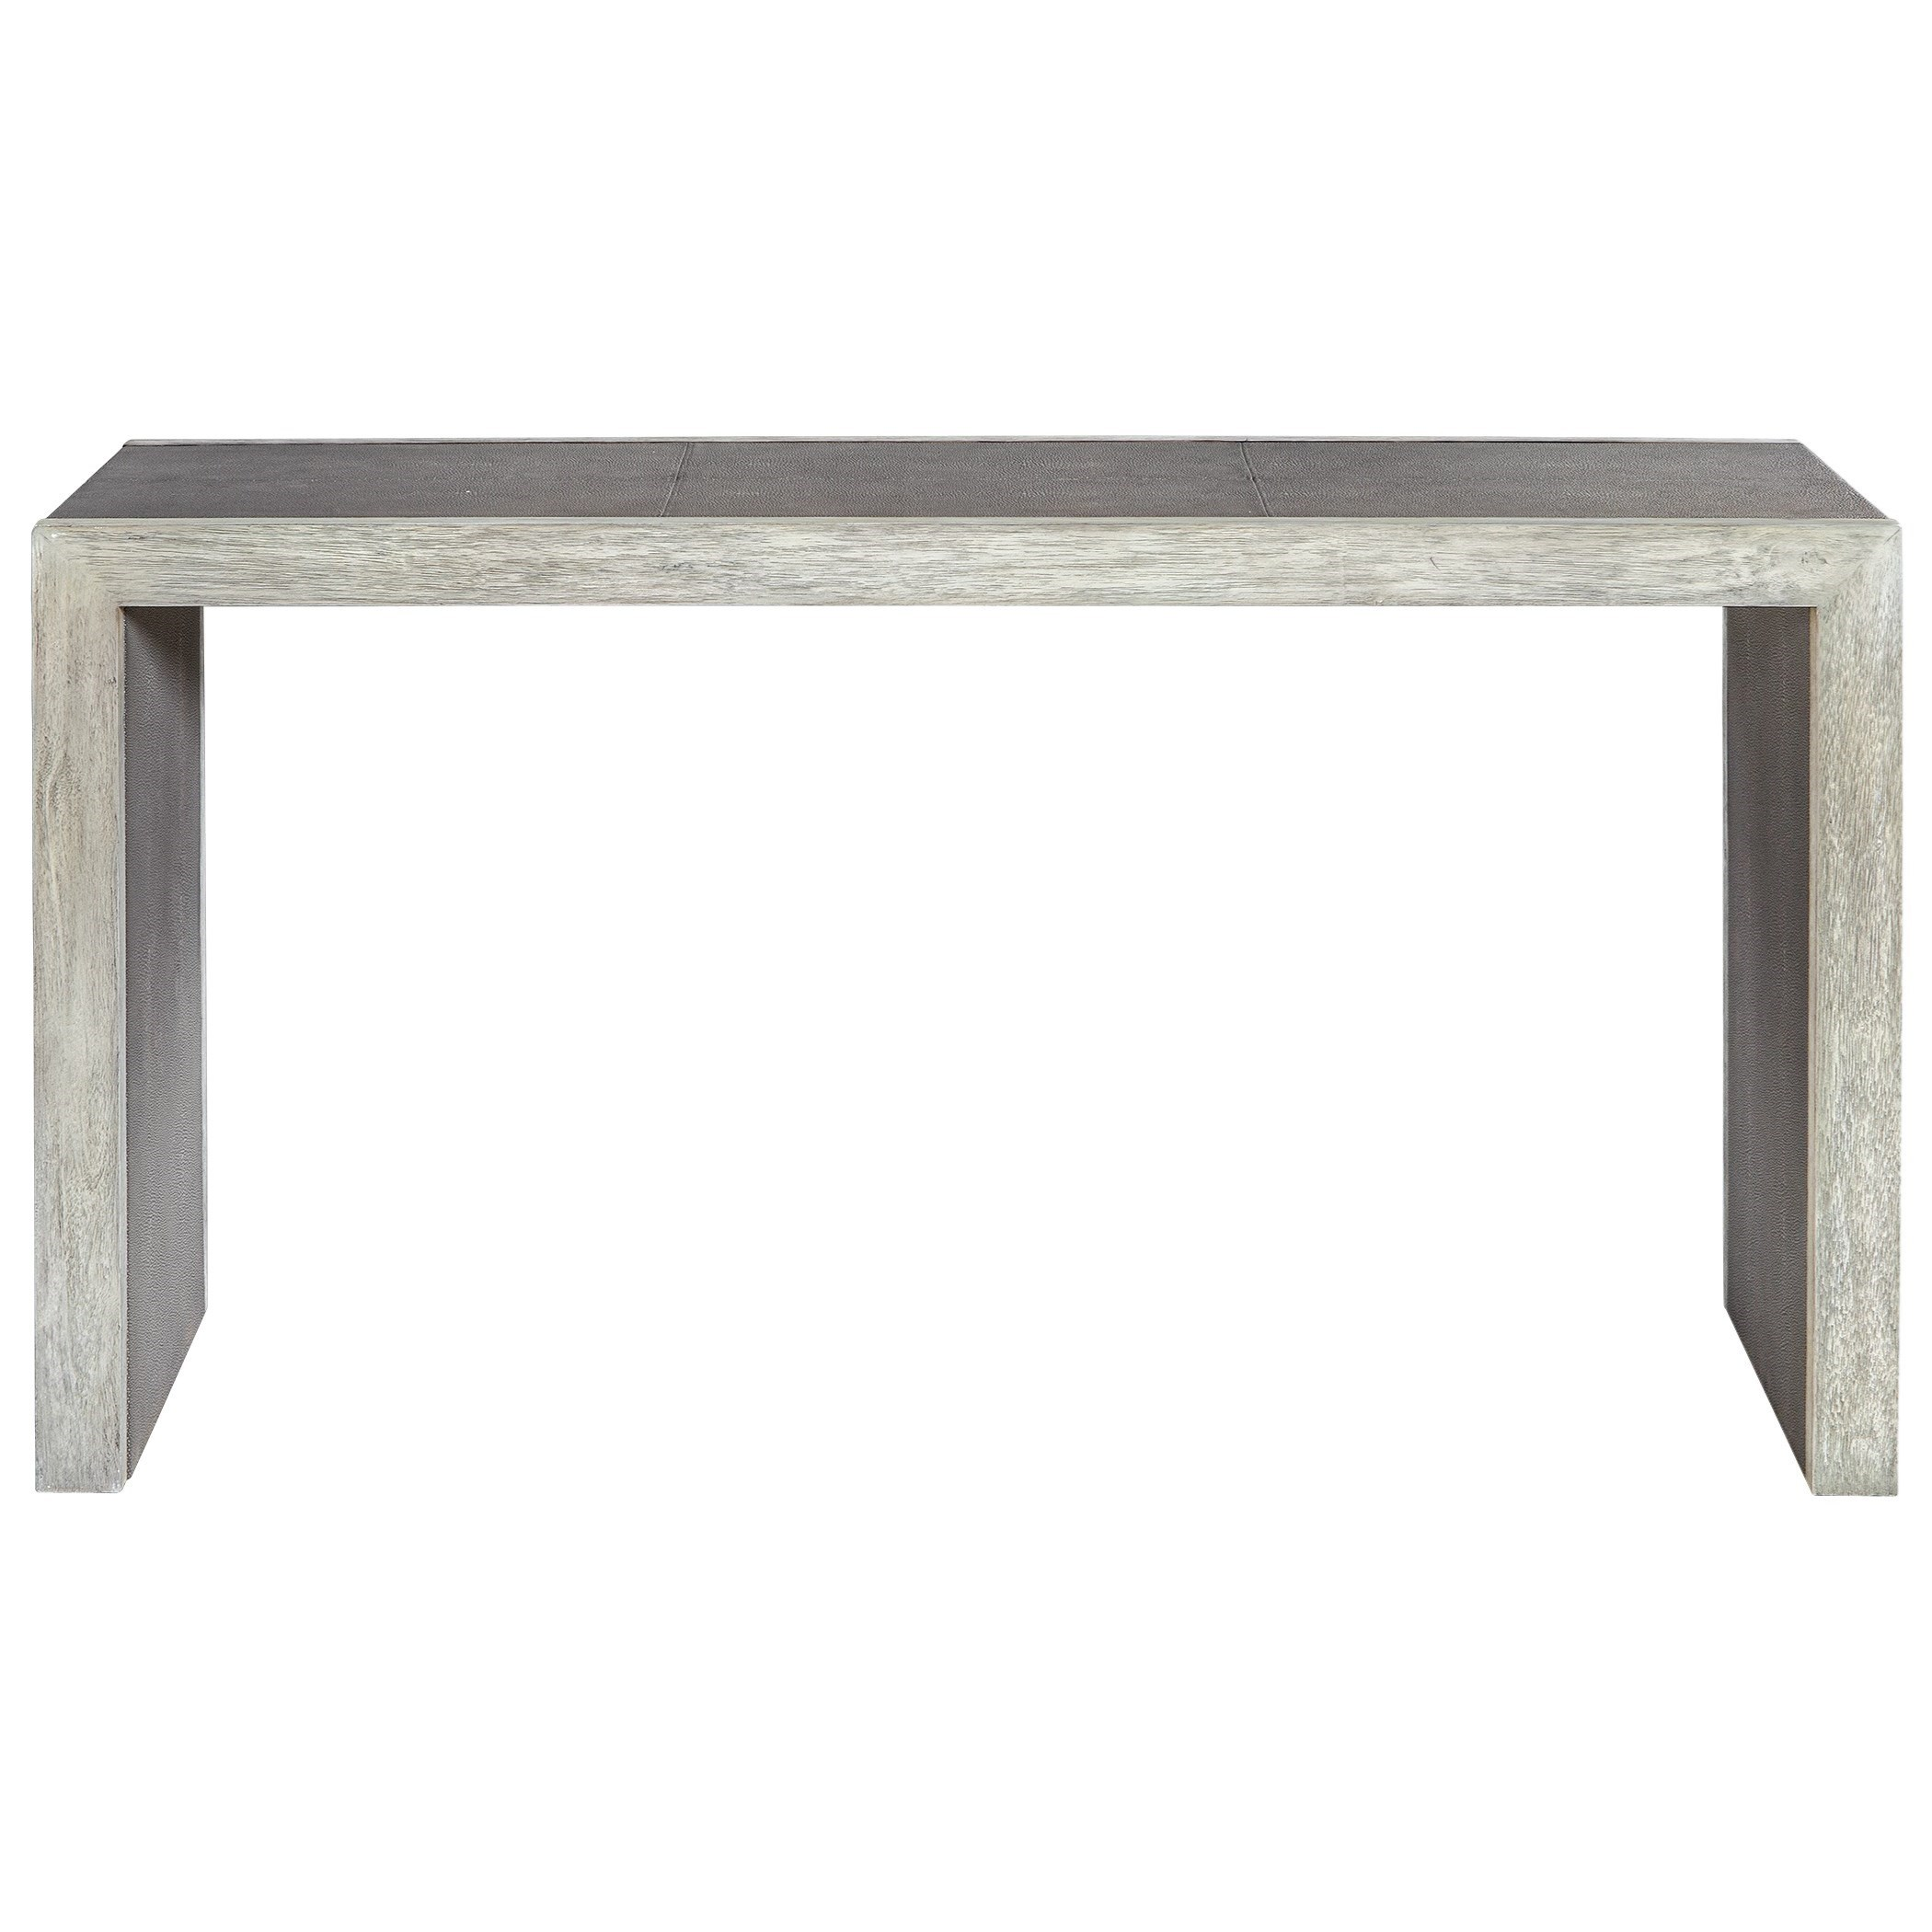 Accent Furniture - Occasional Tables Aerina Aged Gray Console Table by Uttermost at Suburban Furniture